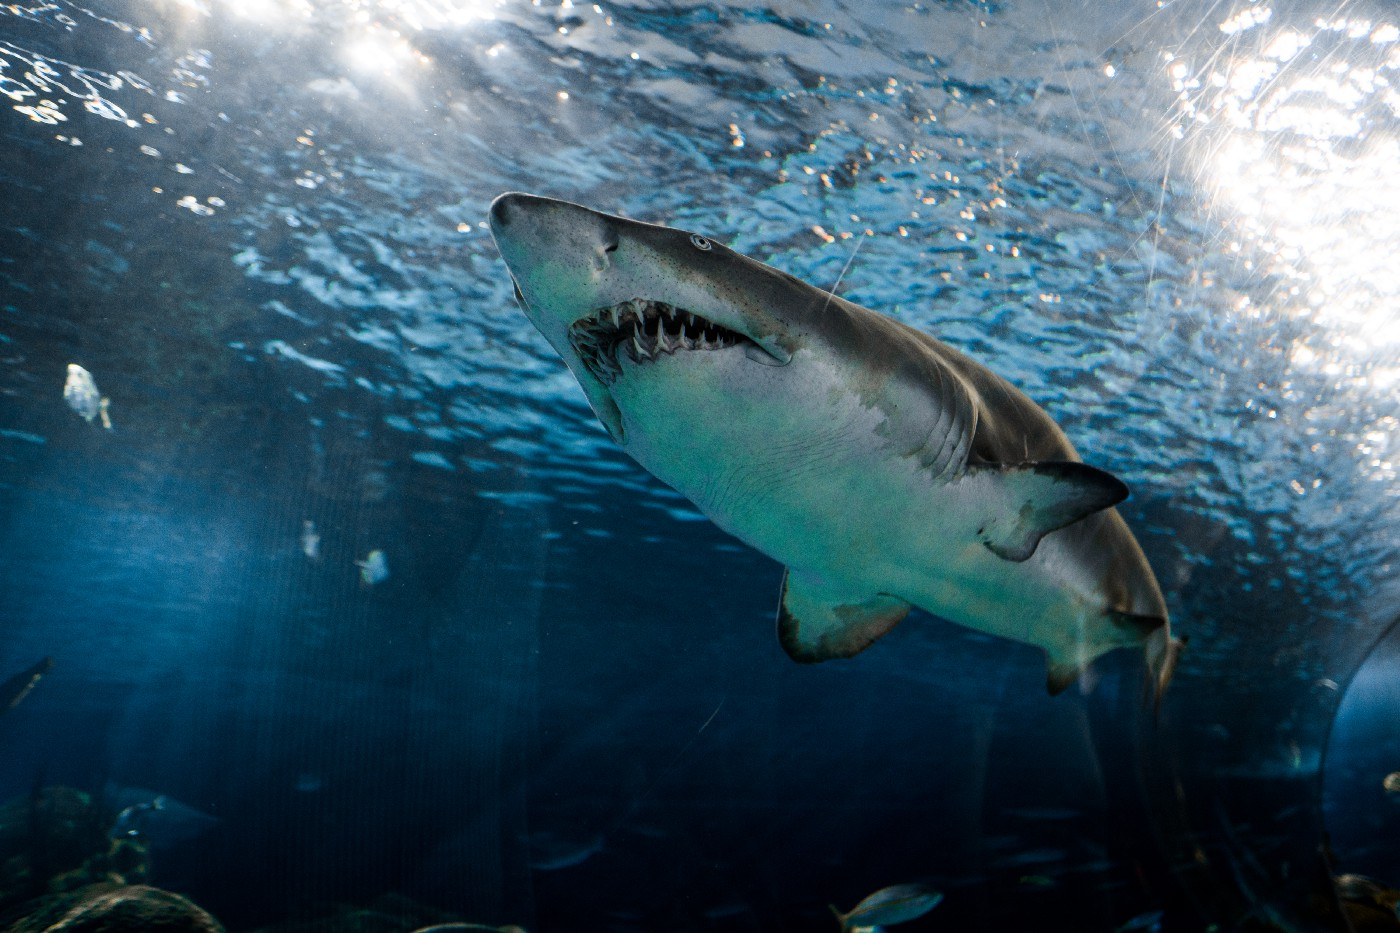 A great white shark swims just below the surface of the water, looking menacing and toothy